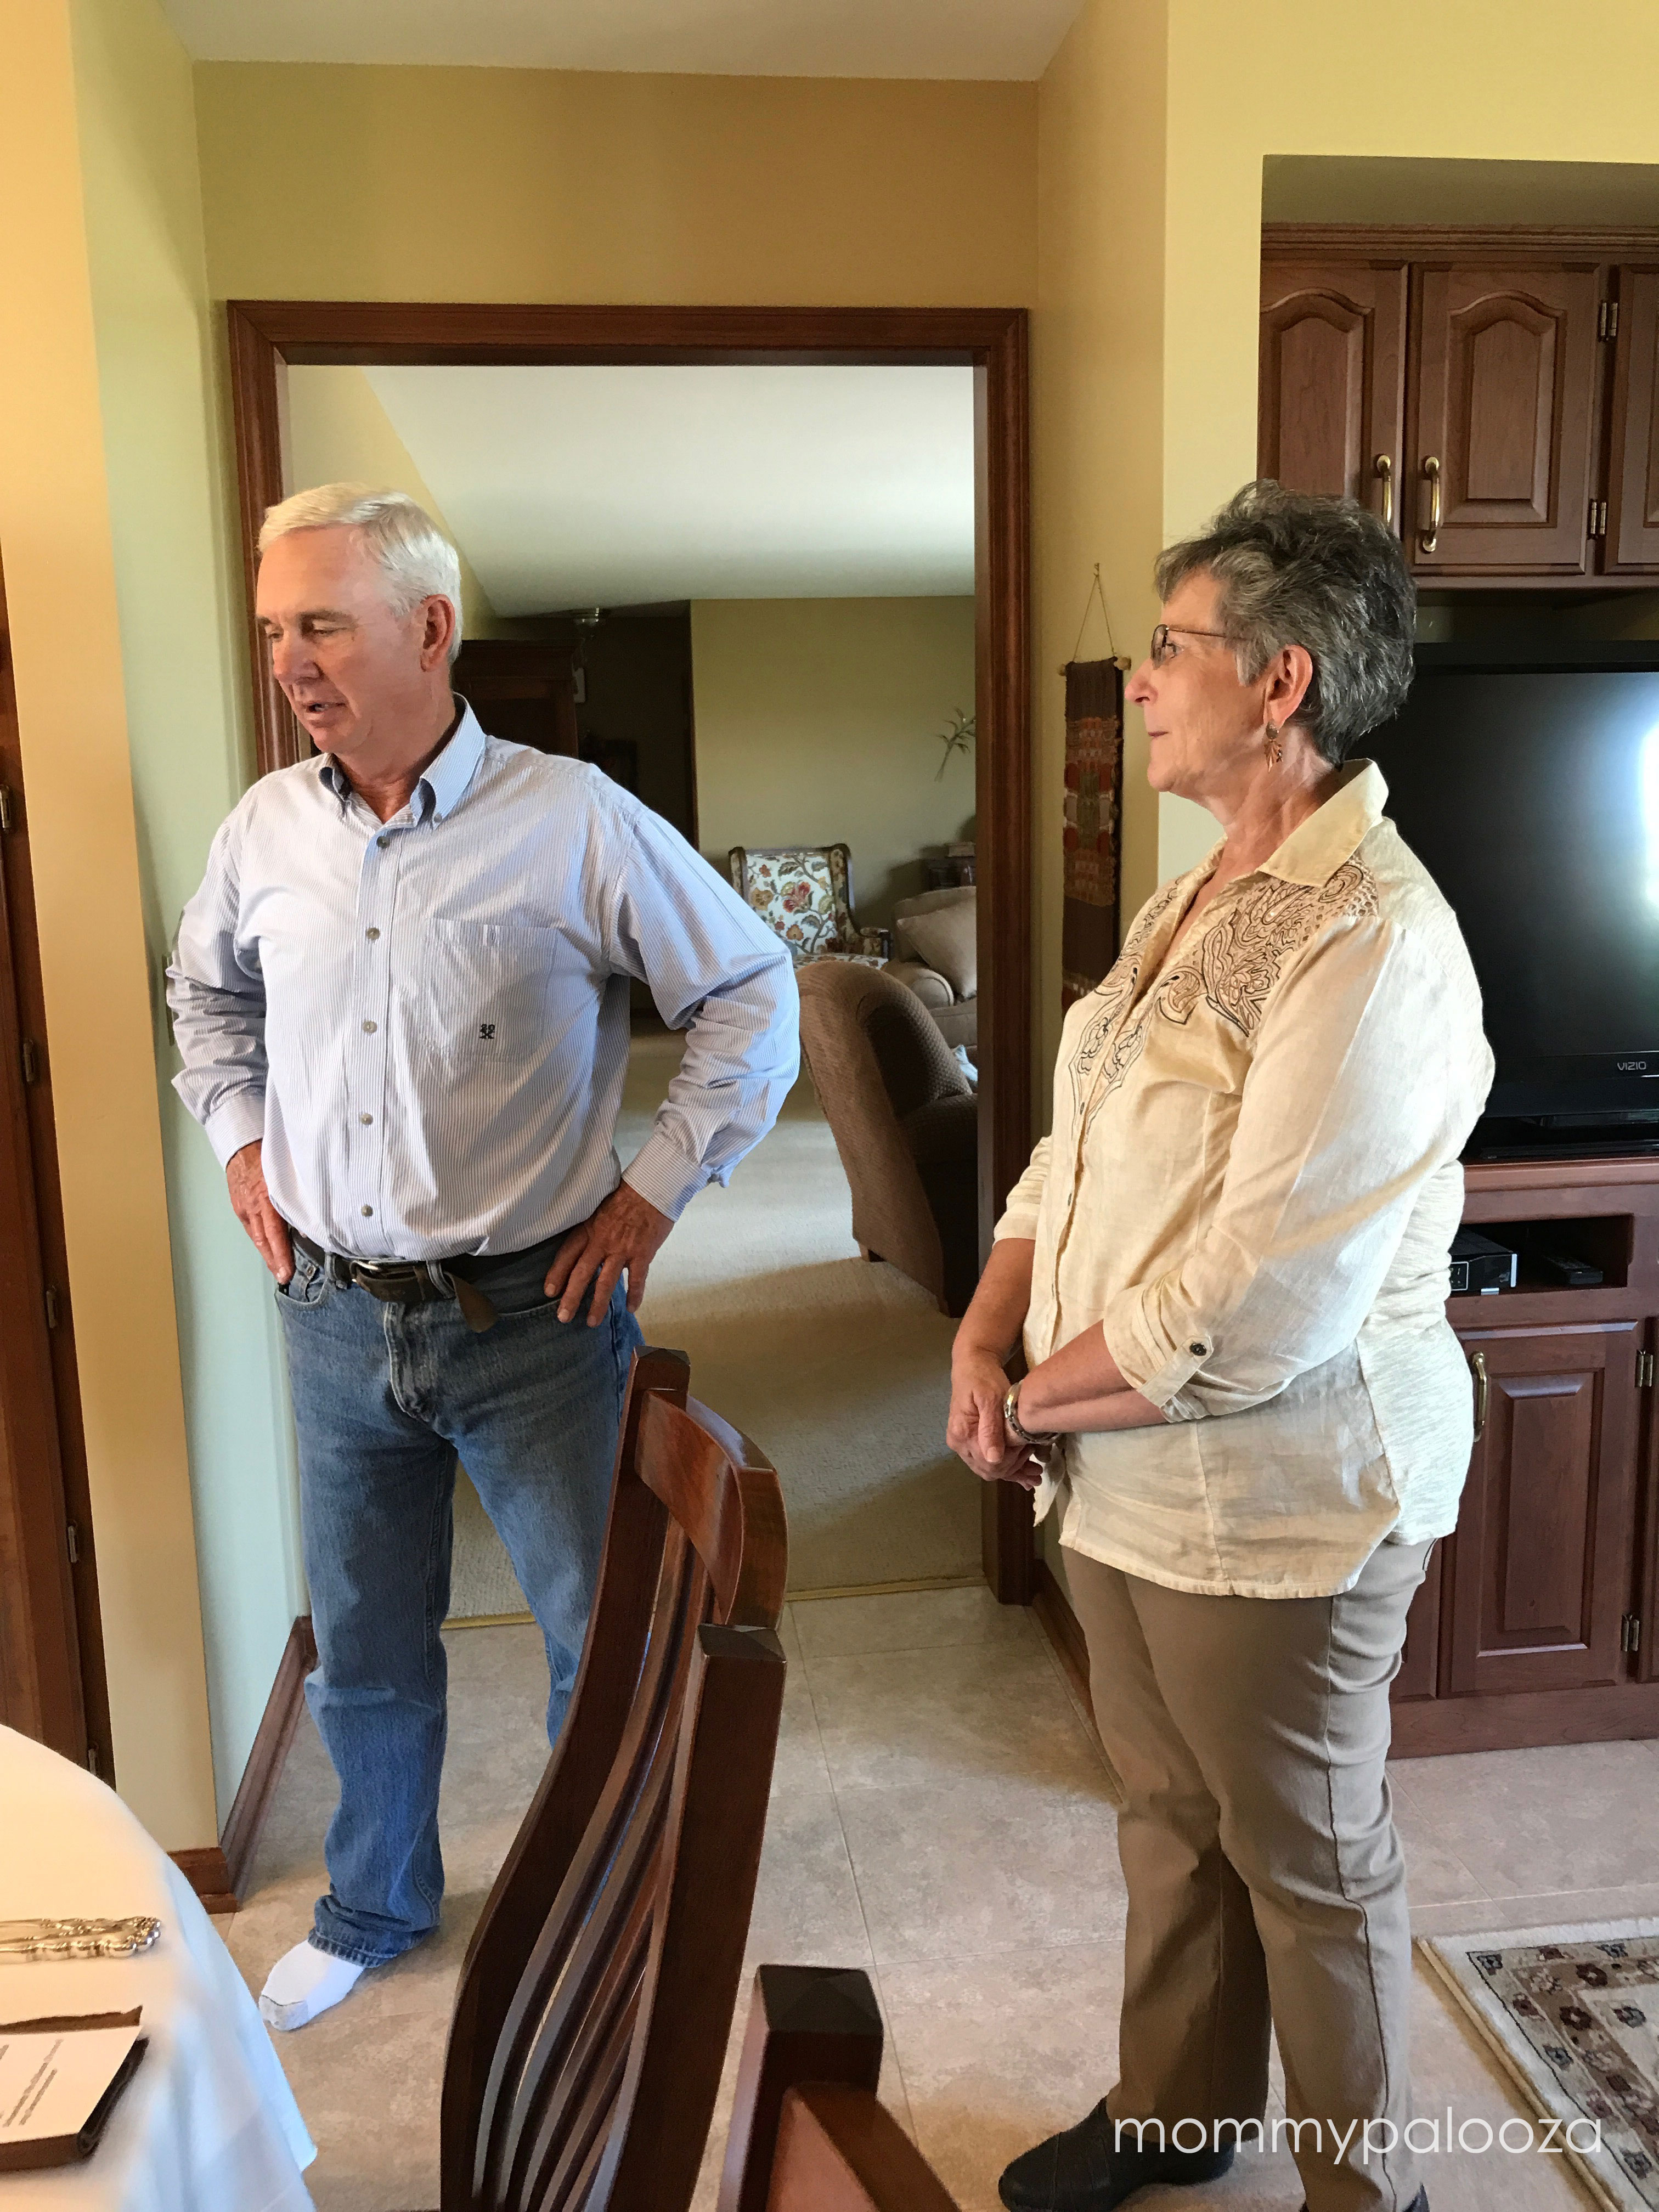 Craig and Amy Good from Good Farms host blogger luncheon in their home as part of Farm Food Tour